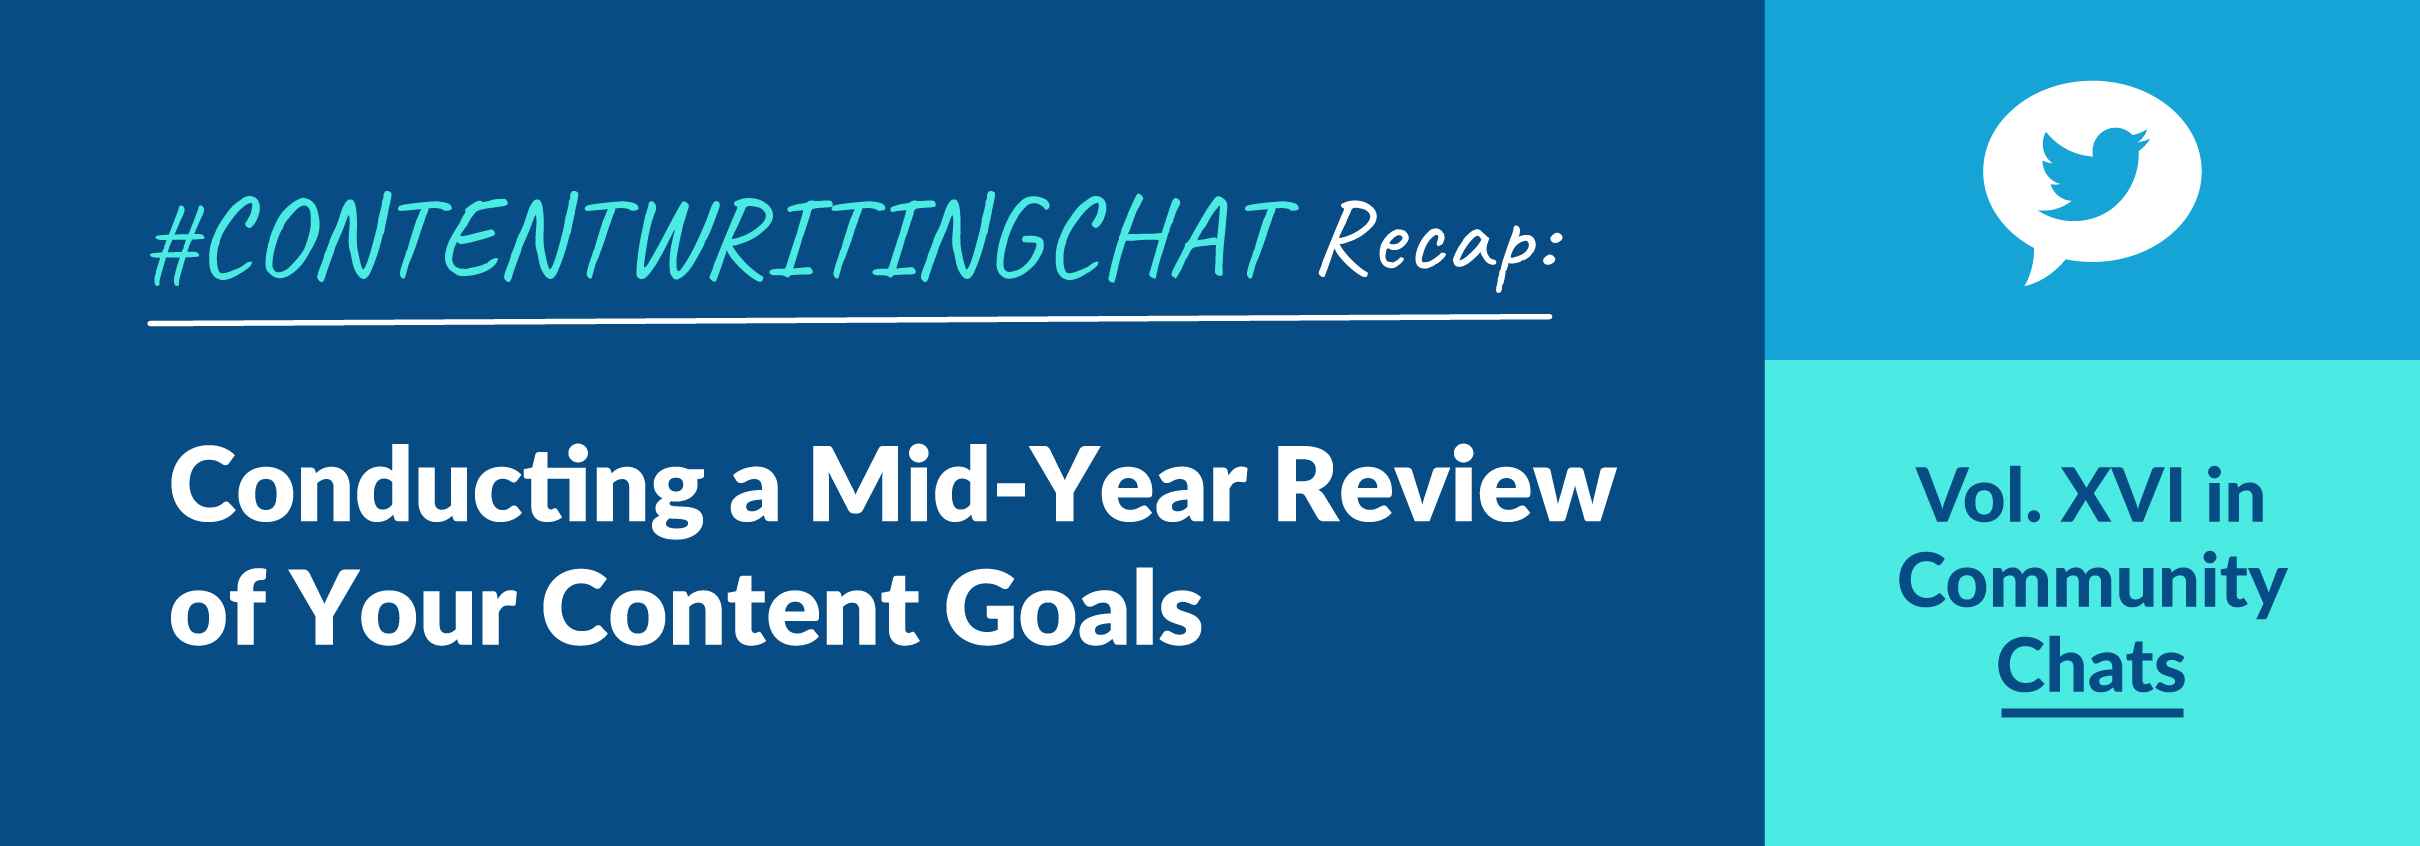 #ContentWritingChat Recap: Conducting a Mid-Year Review of Your Content Goals